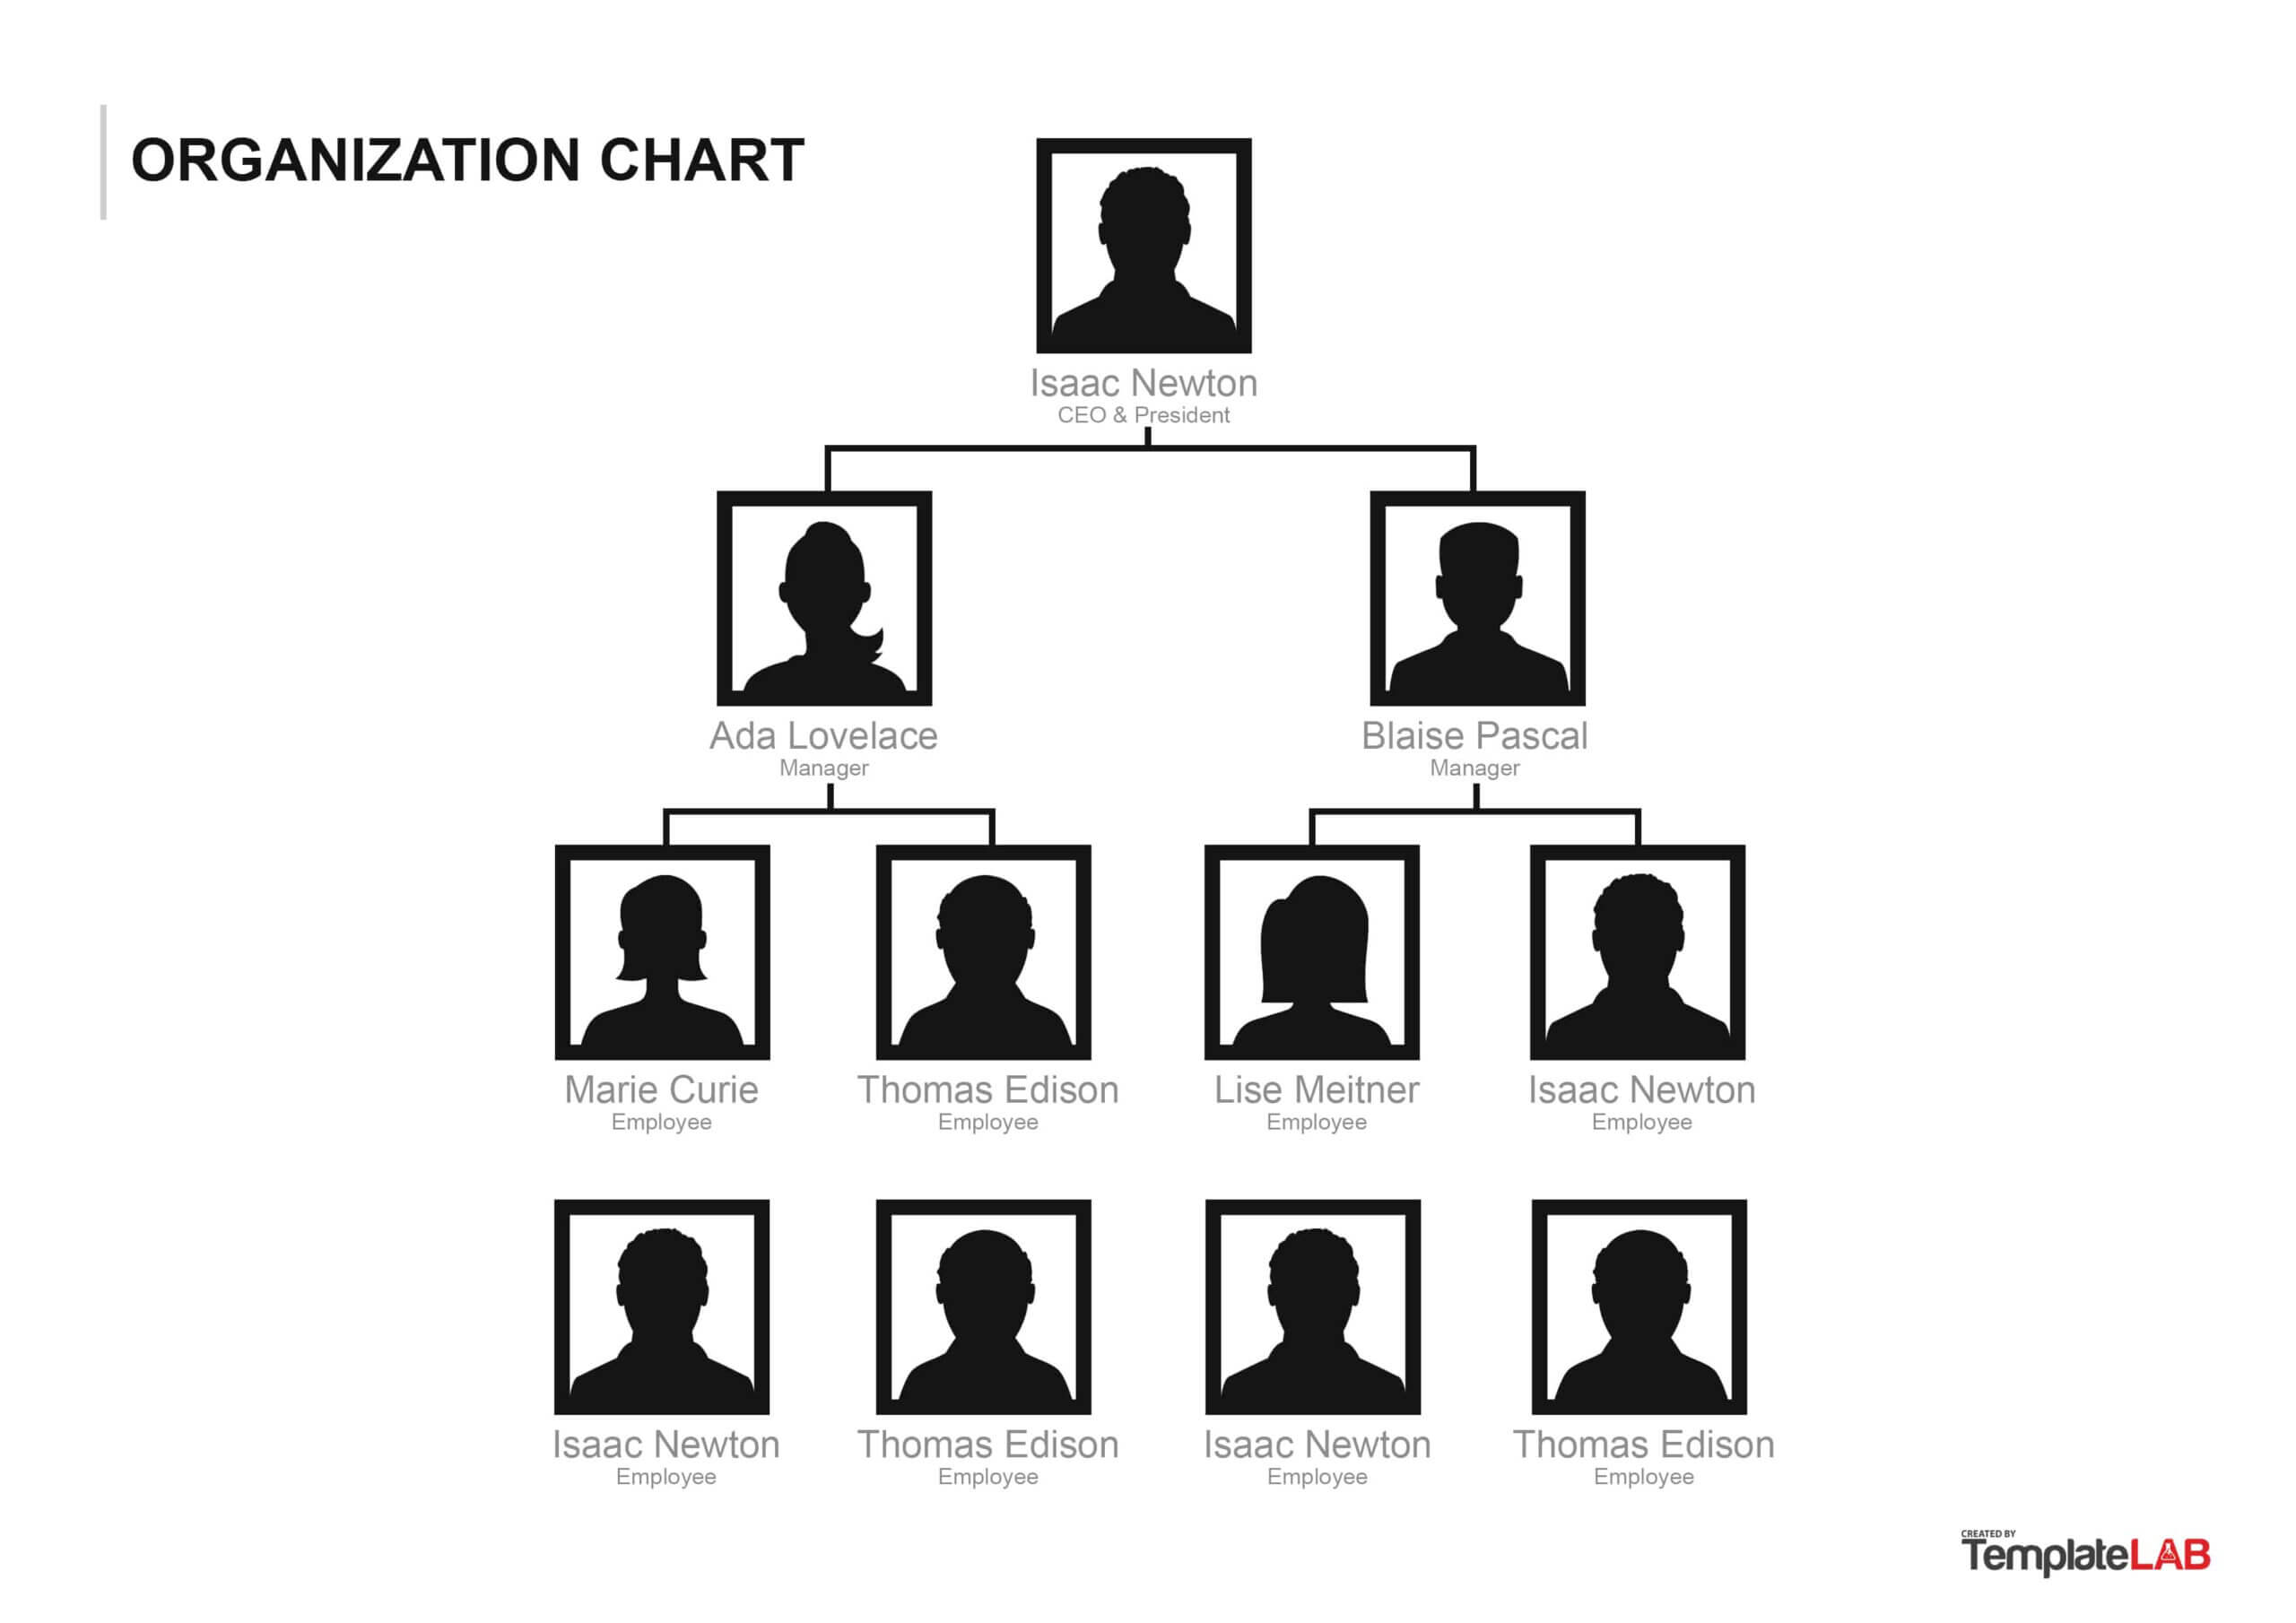 40 Organizational Chart Templates (Word, Excel, Powerpoint) Regarding Free Blank Organizational Chart Template